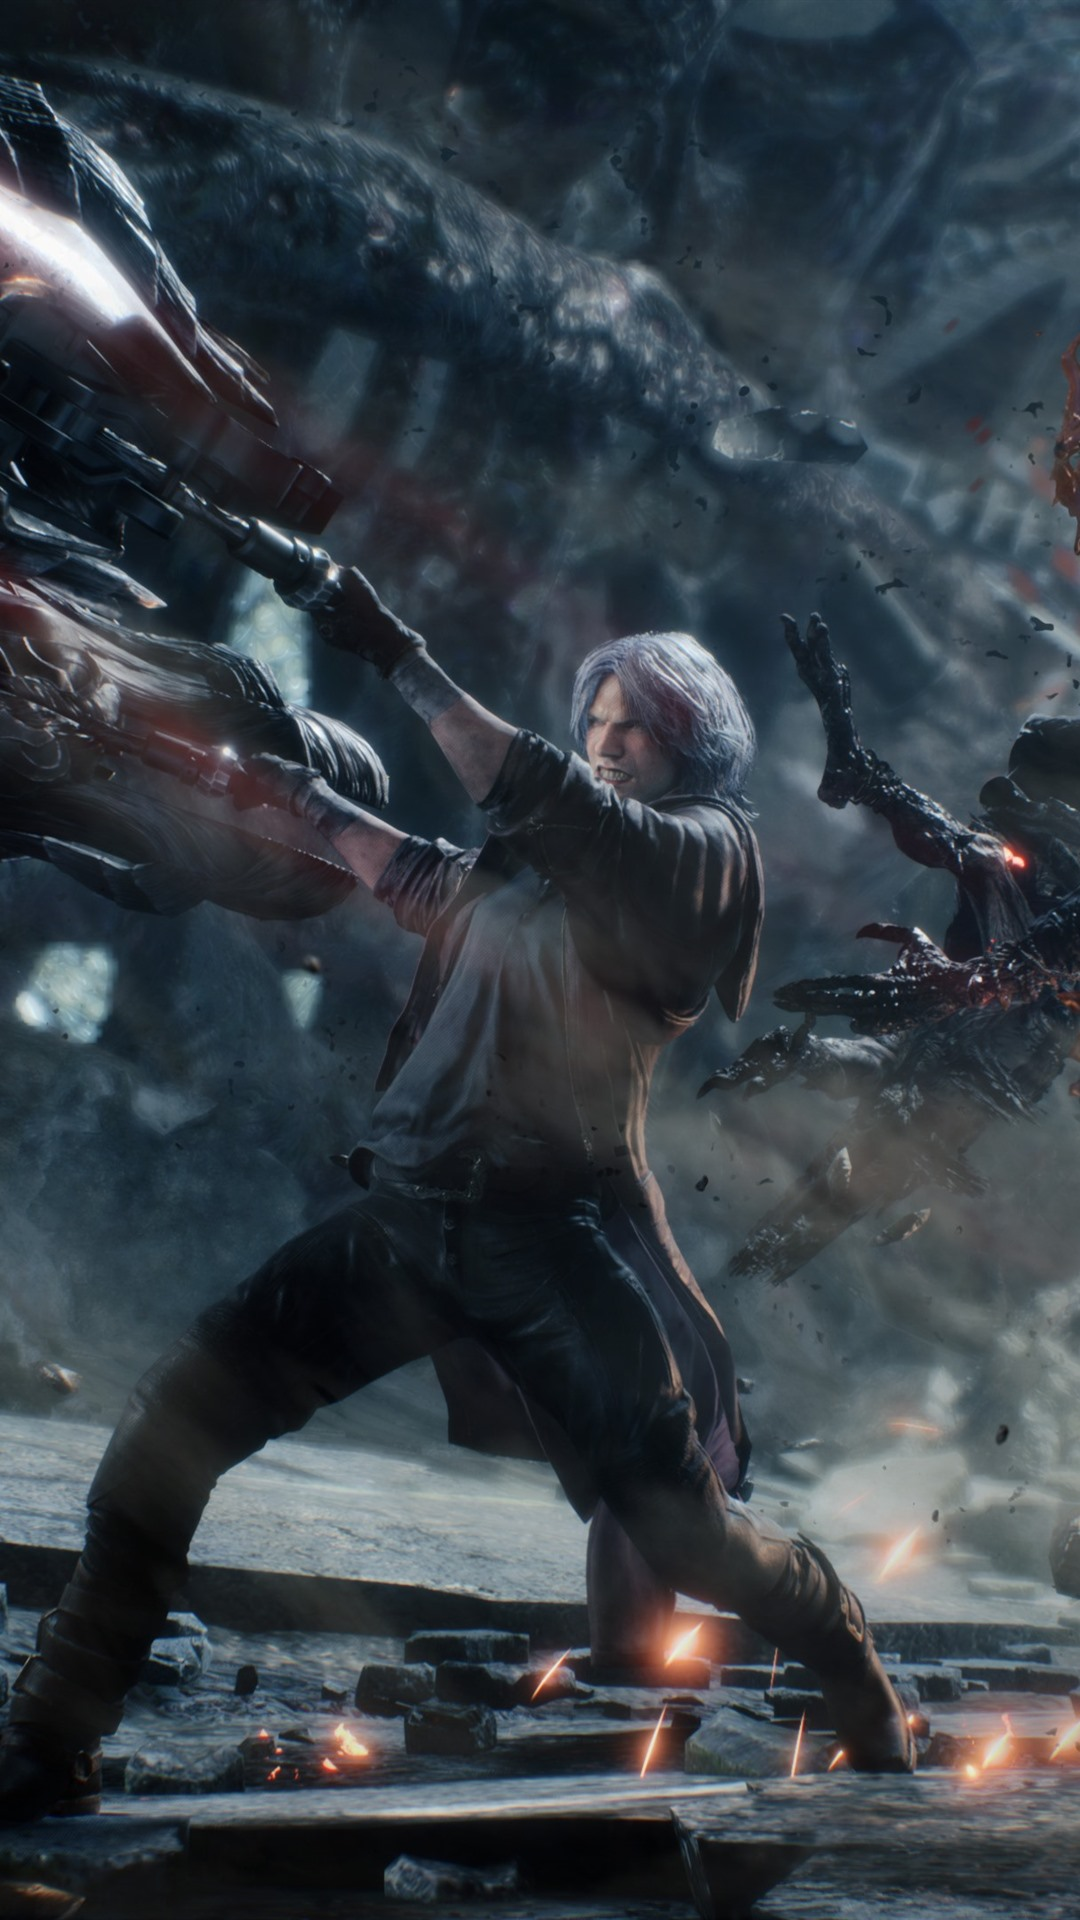 Devil May Cry 5 Fight 1080x1920 Iphone 8 7 6 6s Plus Wallpaper